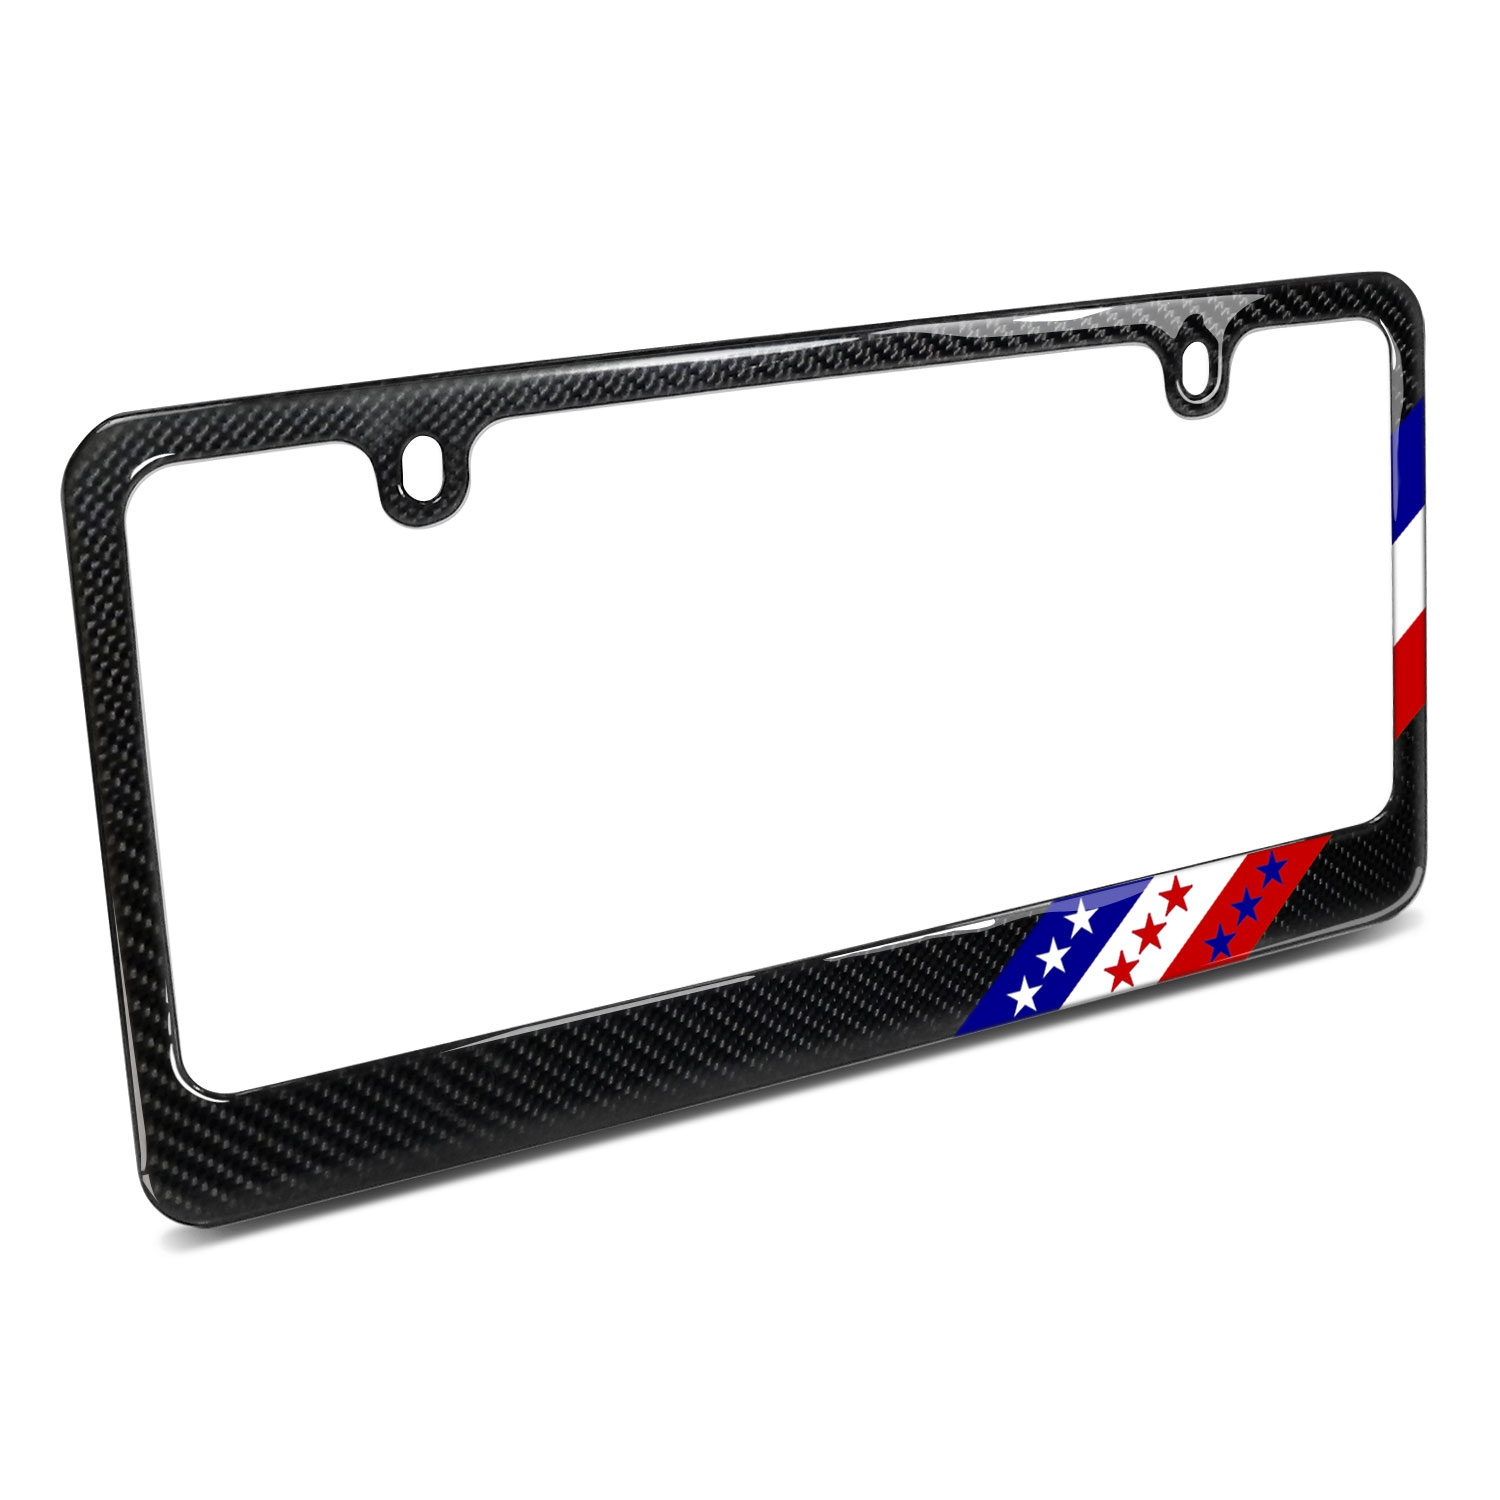 Real Black Carbon Fiber USA Amercan Flag Off-center in Sports Stripe License Plate Frame